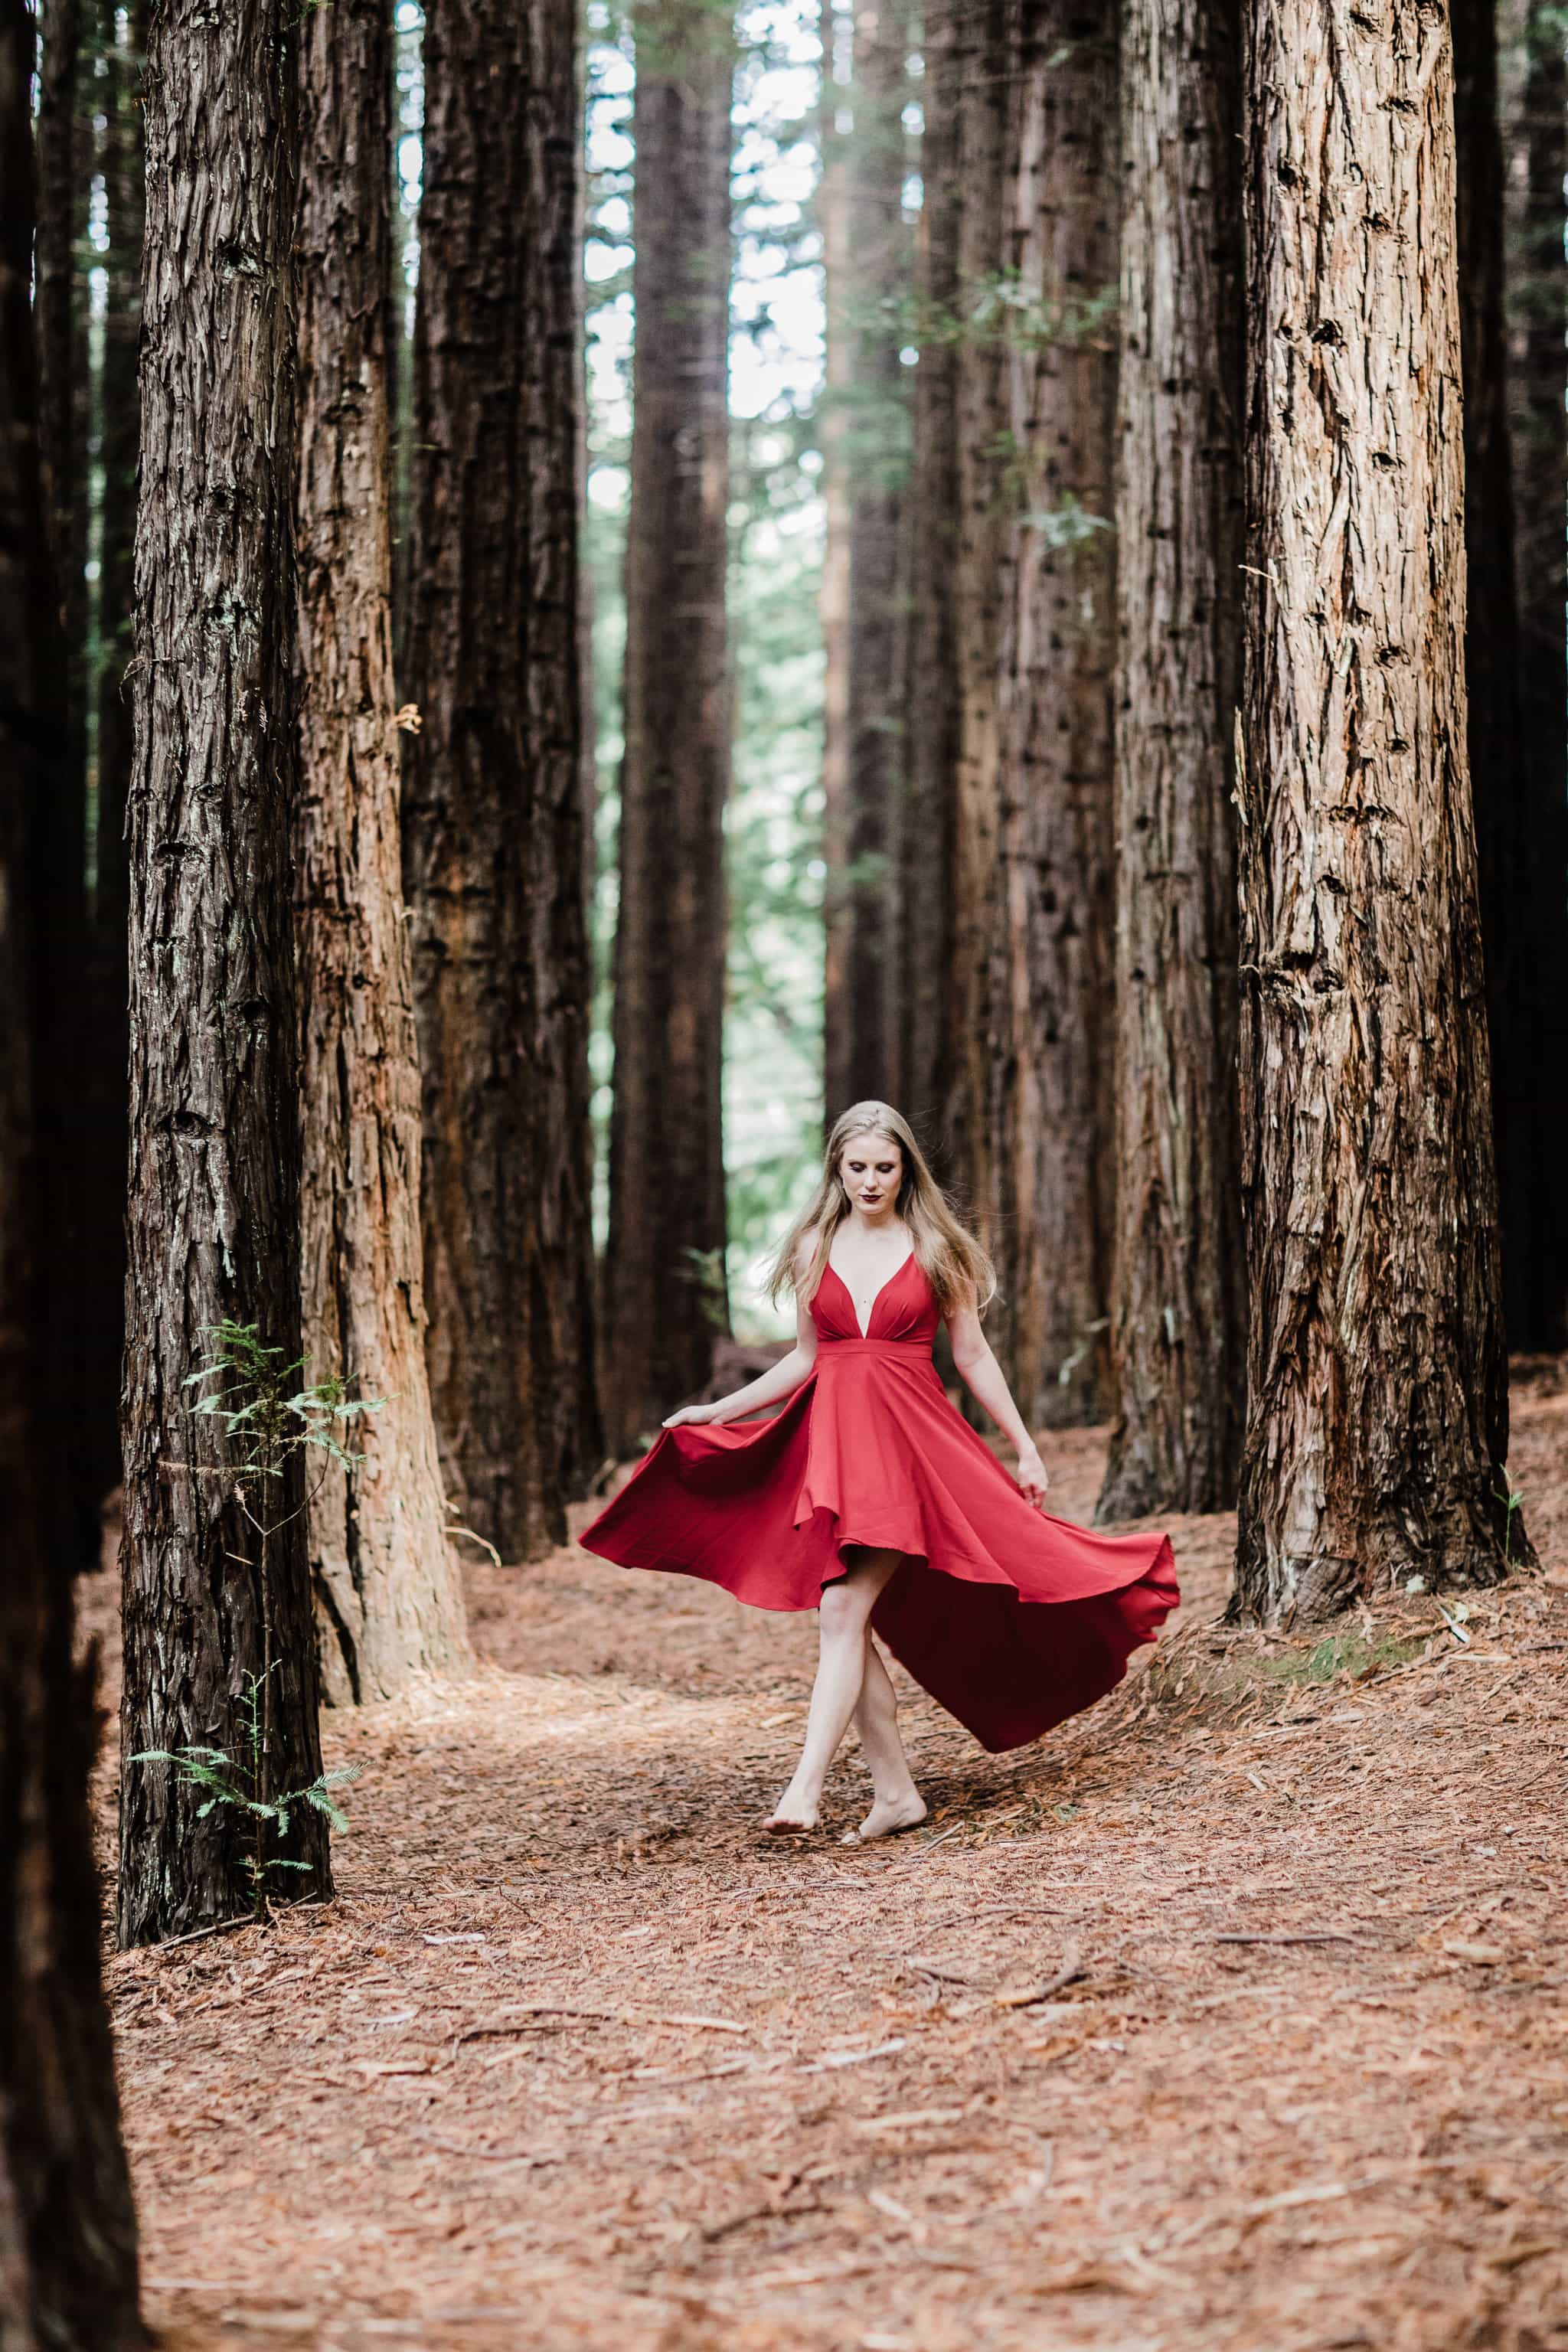 girl walking through forest in red long dress - movement of dress - barefoot